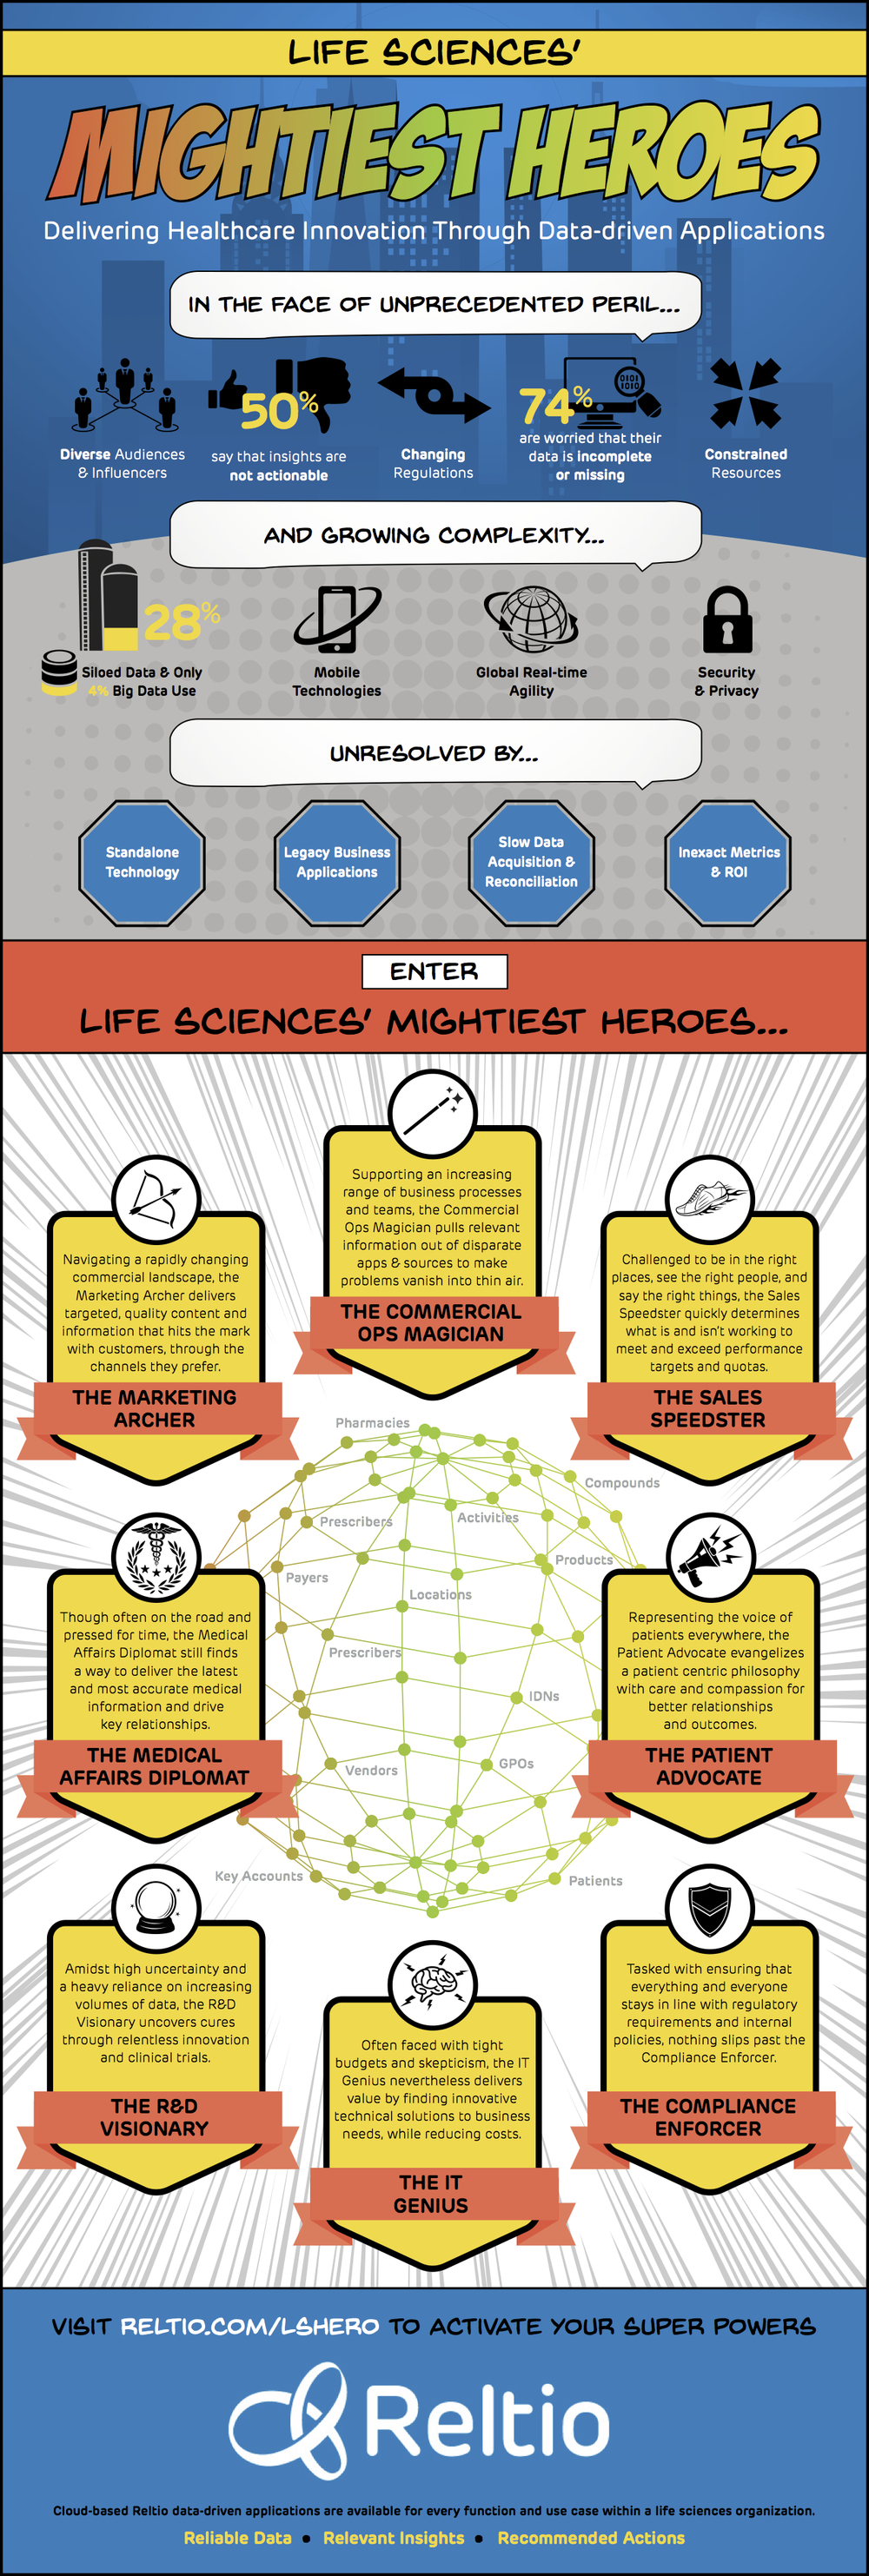 Life Sciences' Mightiest Heroes